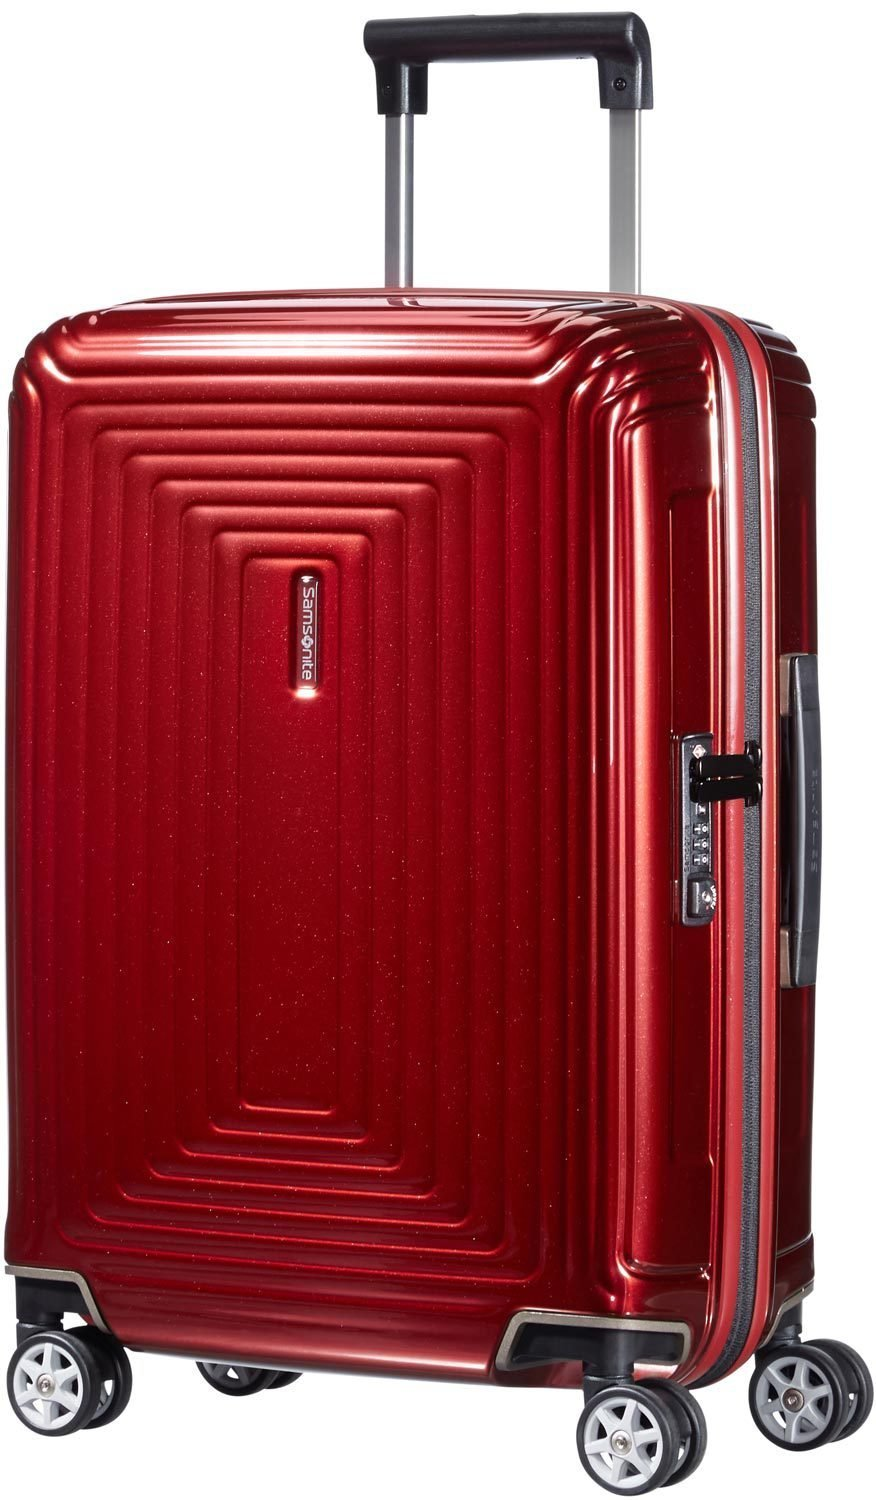 Samsonite Neopulse Spinner miglior design